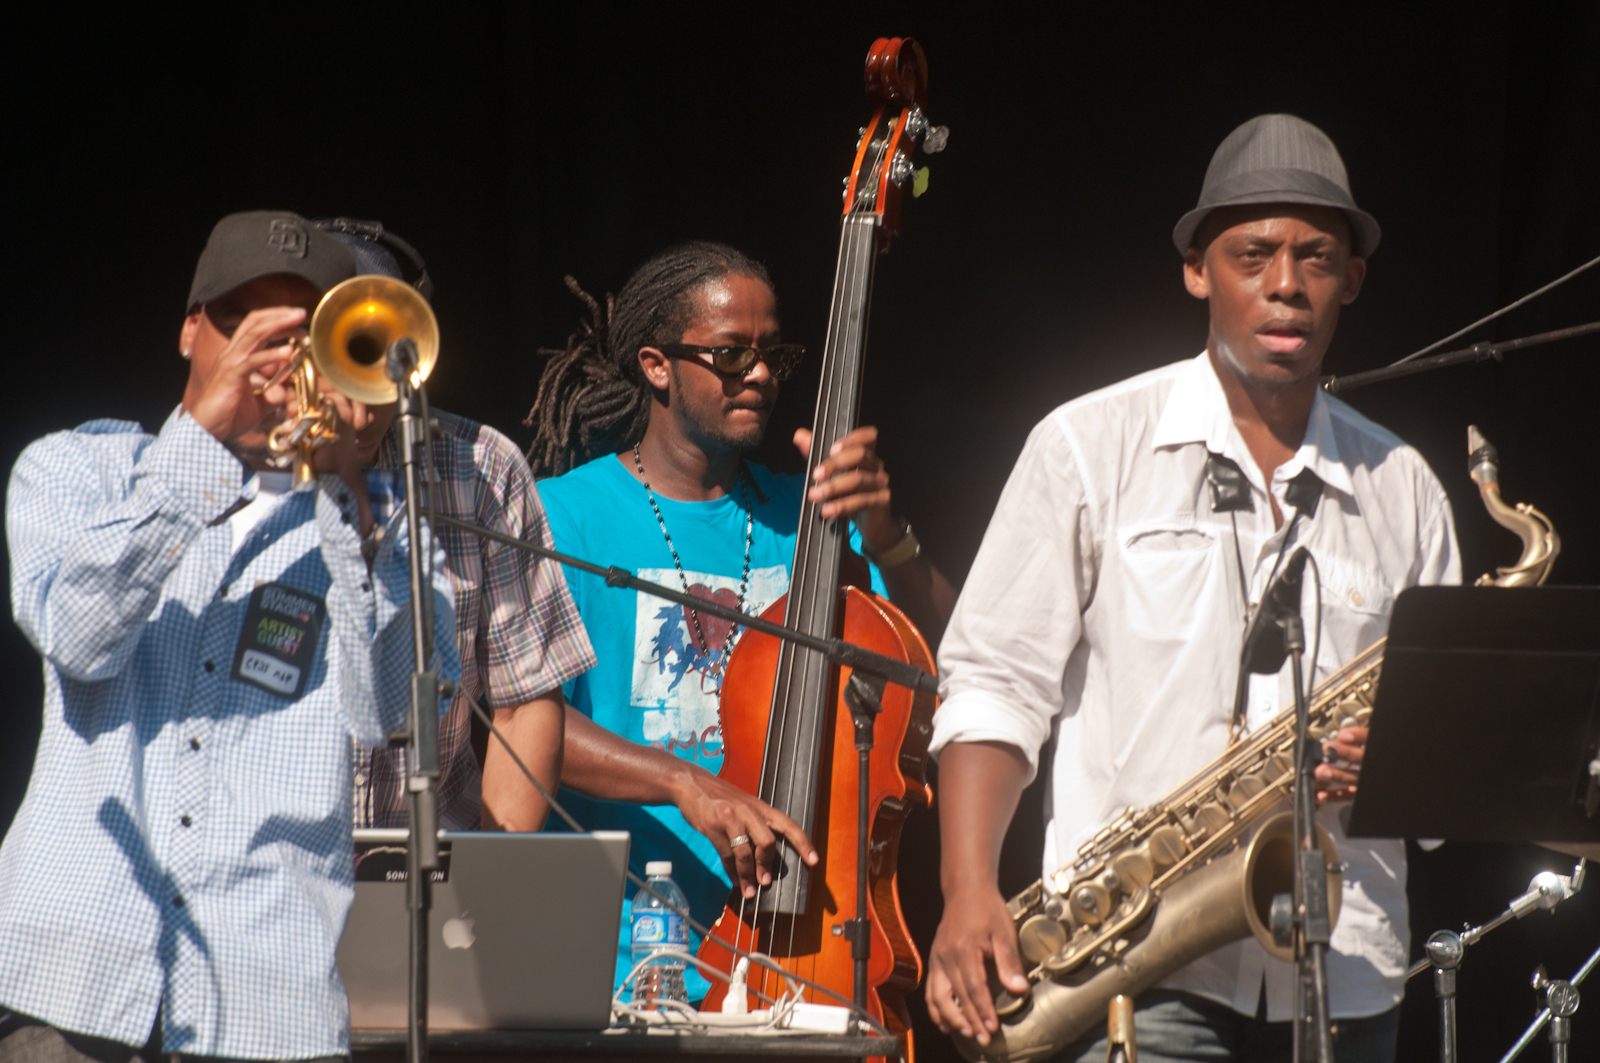 Ingmar Thomas, Ben Williams and Marcus Strickland at the Charlie Parker Festival 2010